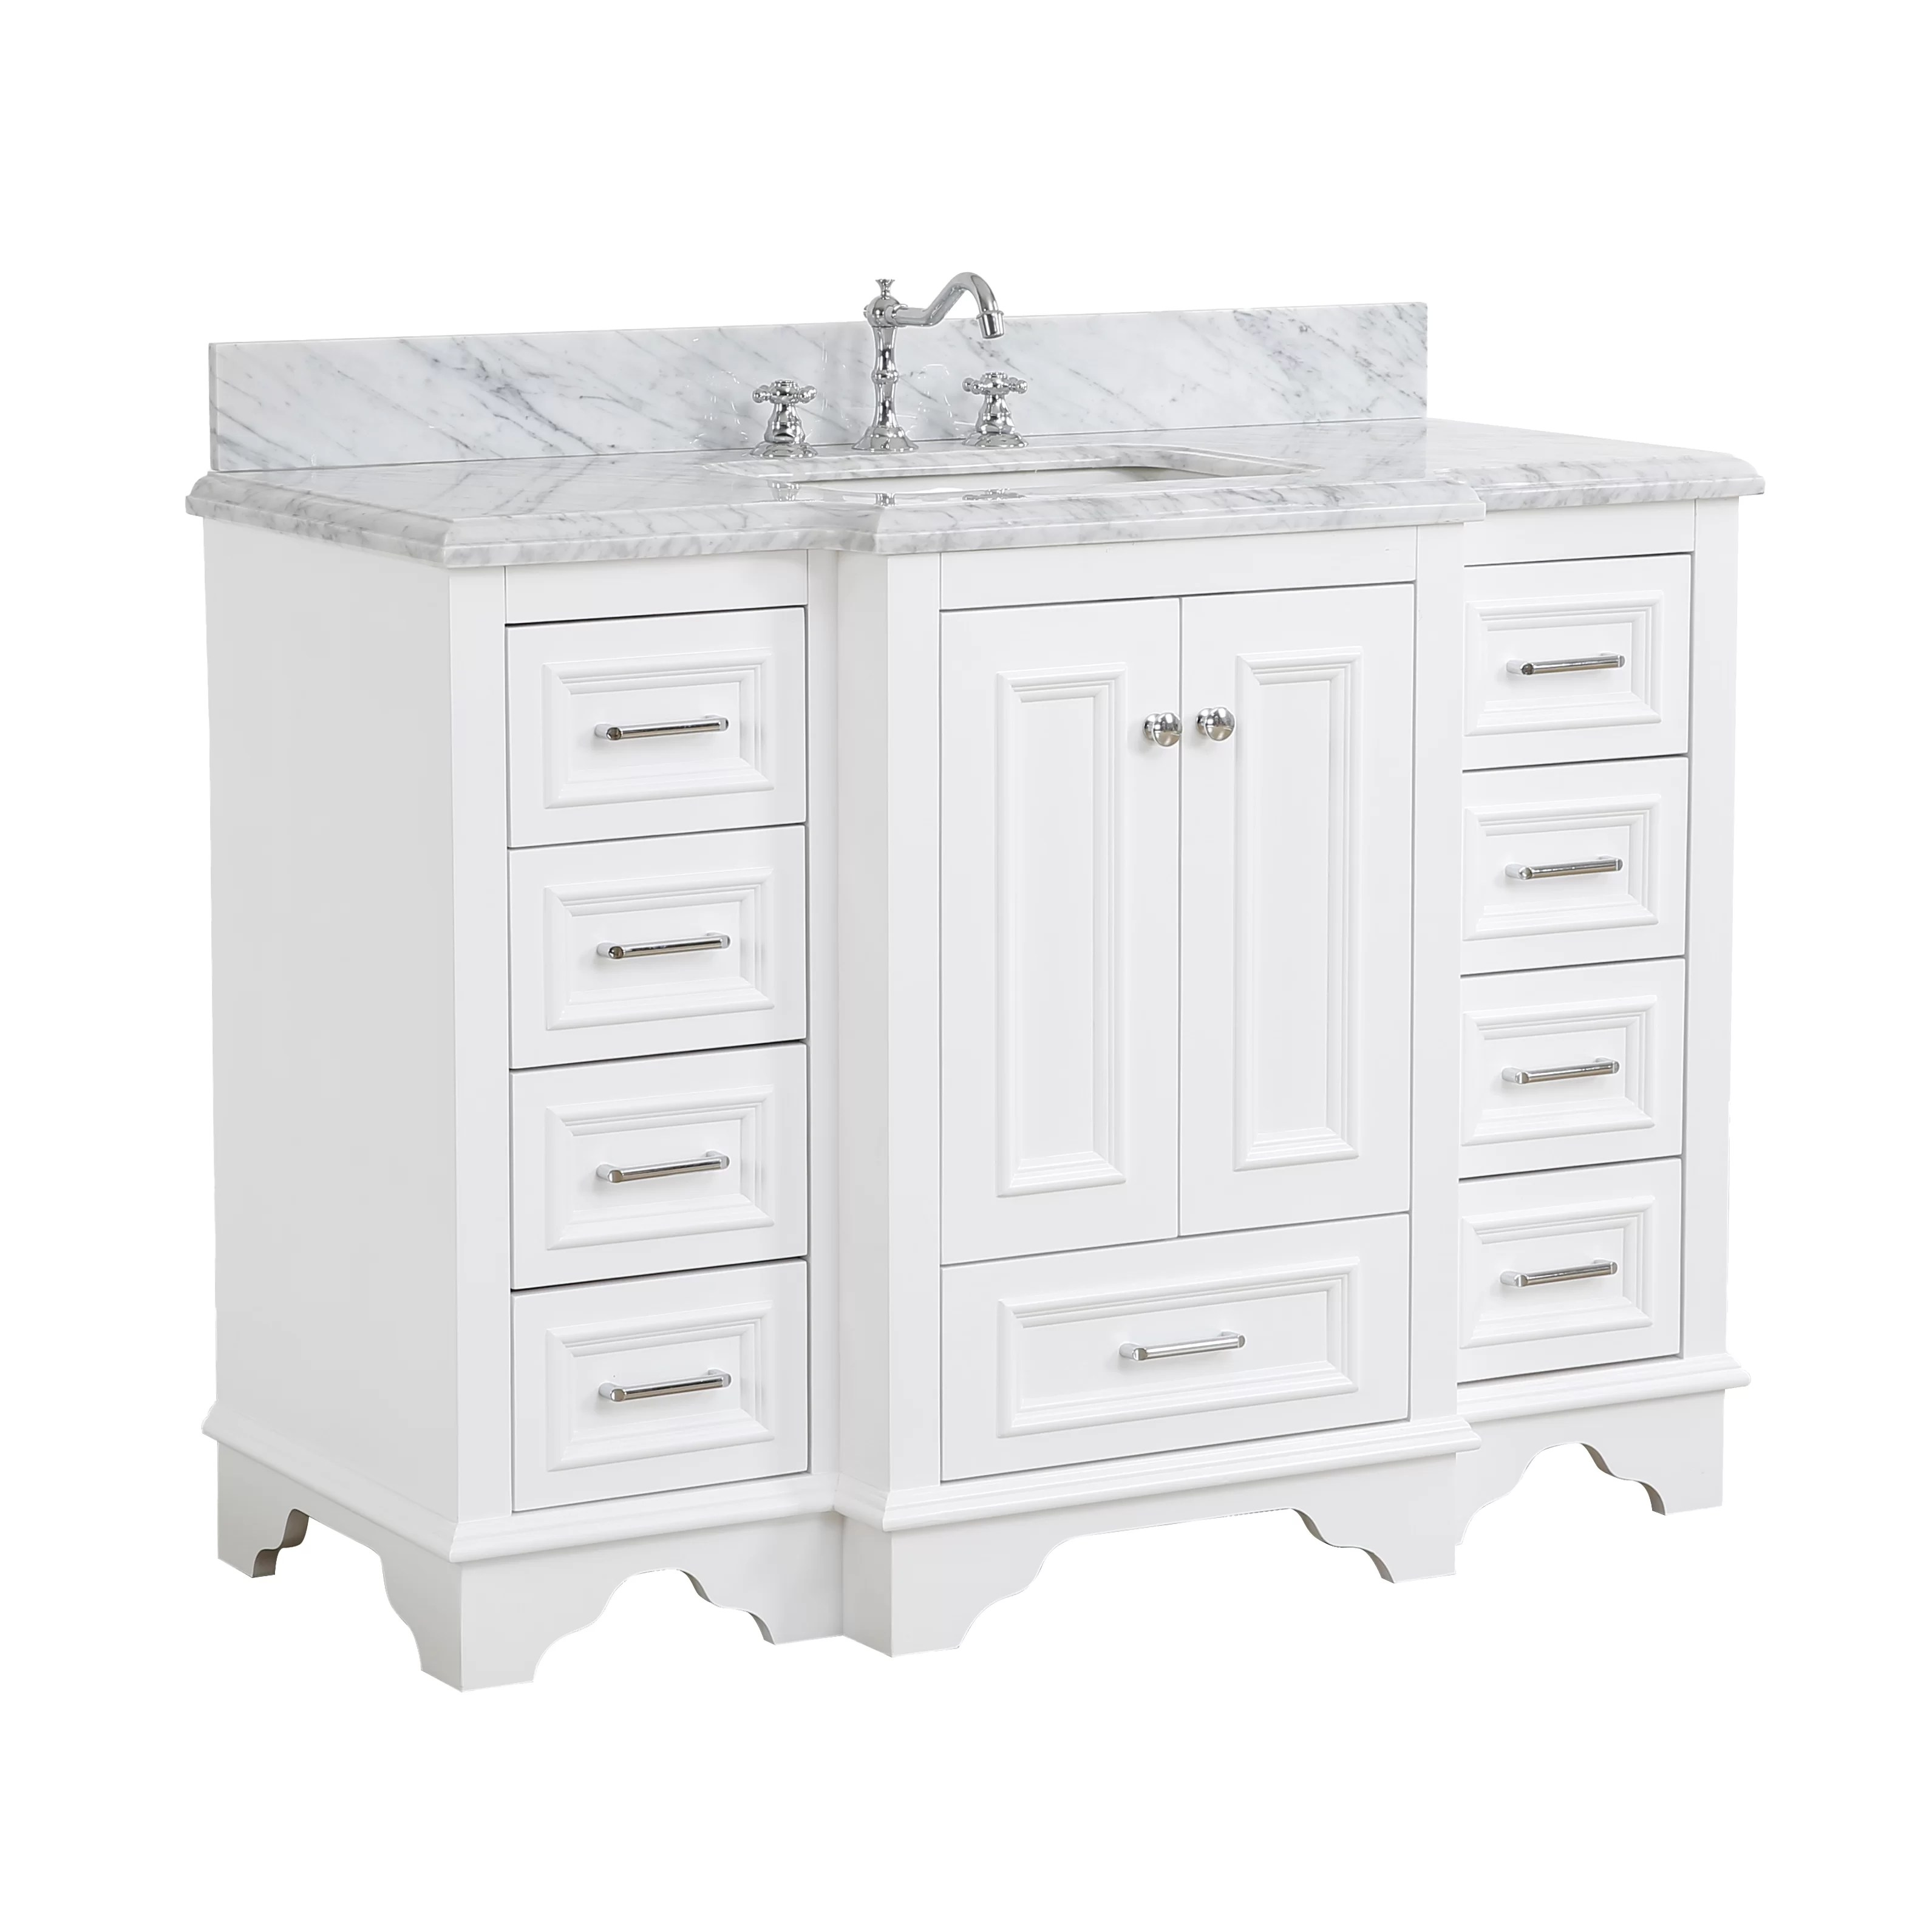 48 Bathroom Vanity Cabinet Nantucket 48